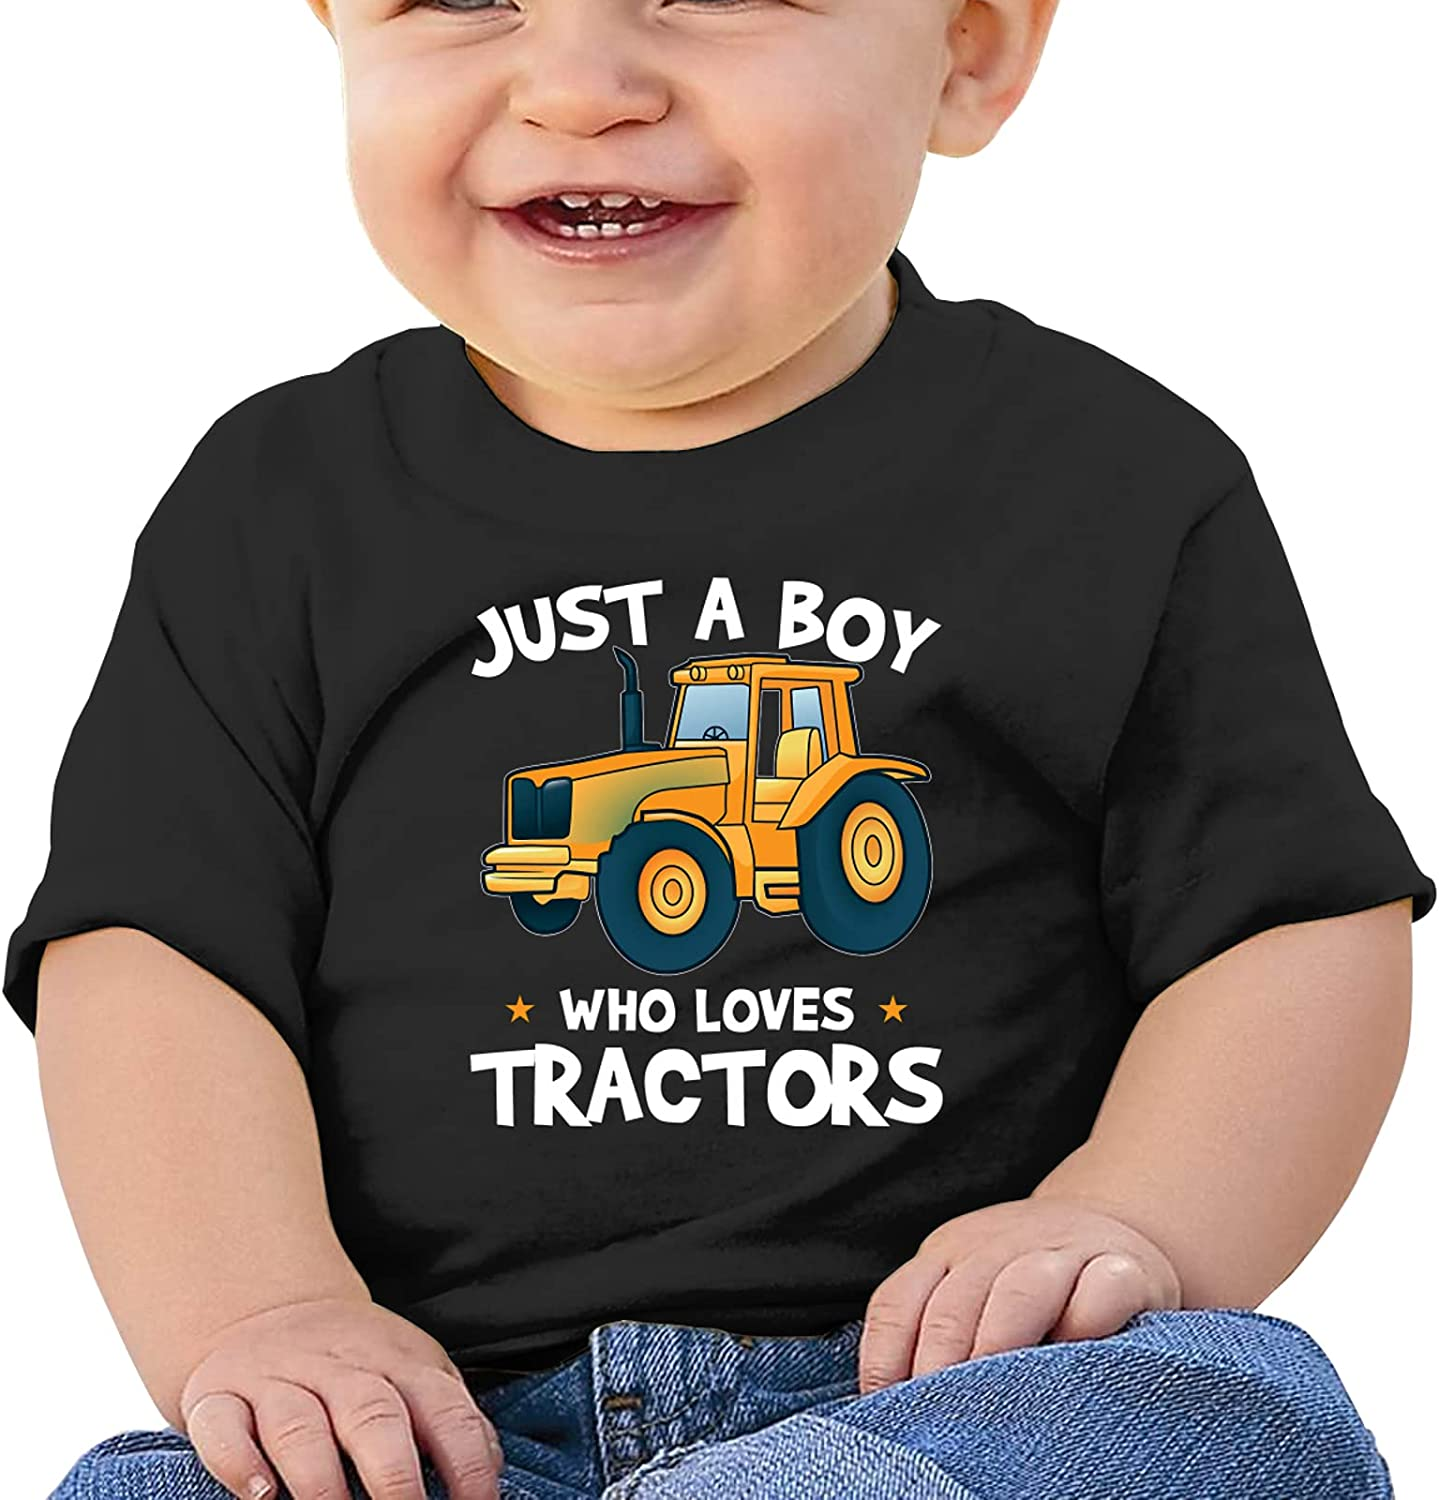 Just A Boy Who Loves Tractors Baby T-Shirts Novelty for Youth Tees with Cool Designs